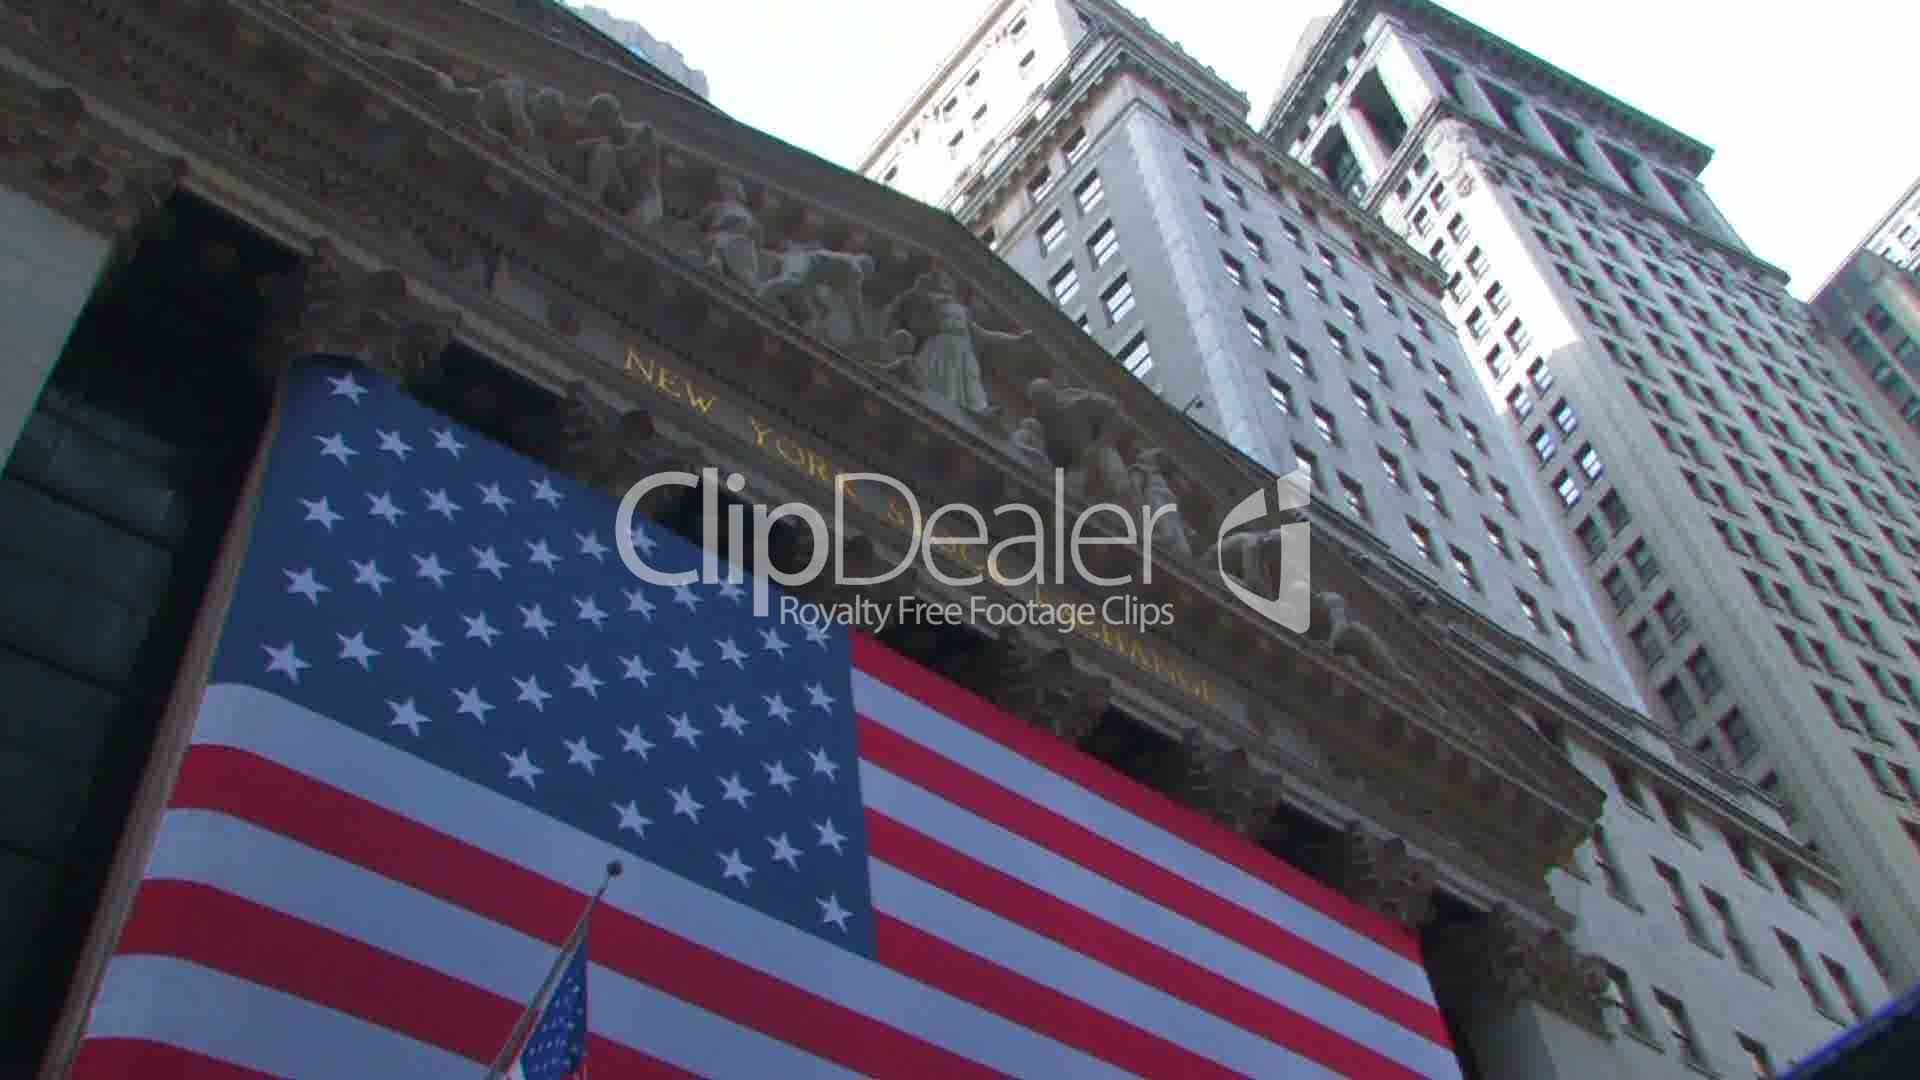 Wall Street Stock Market New York: Royalty-free video and ...